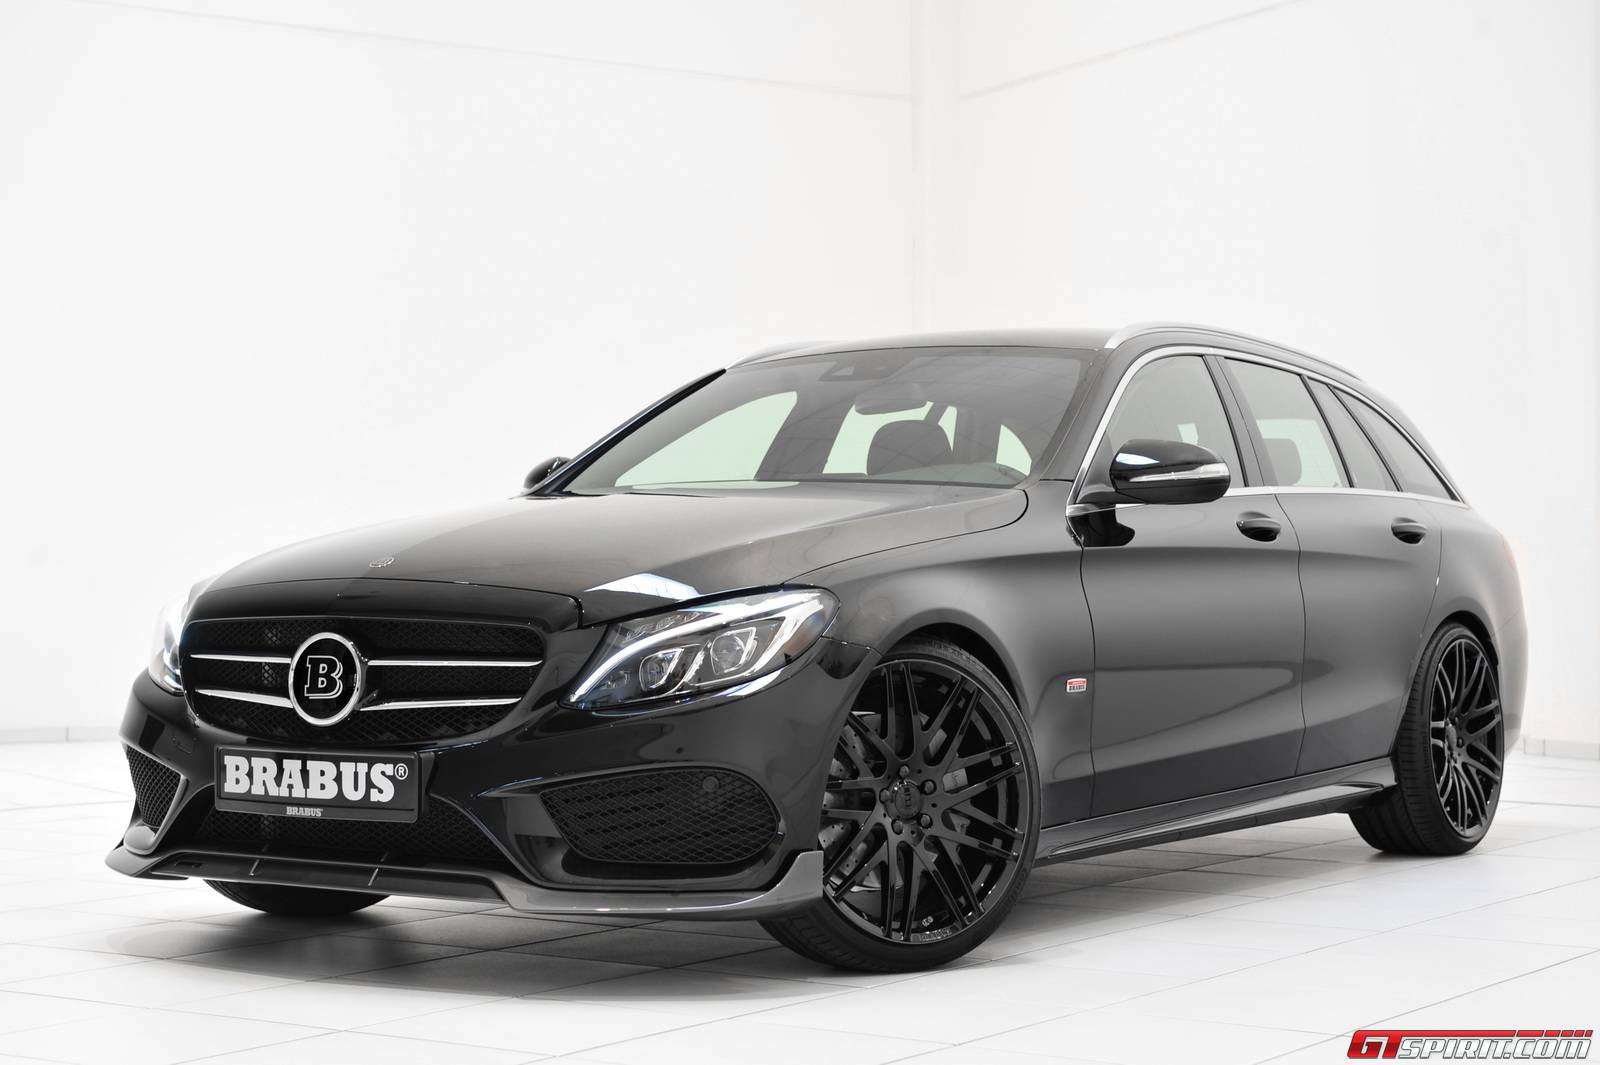 Official brabus mercedes benz c class estate gtspirit for Mercedes benz g class brabus